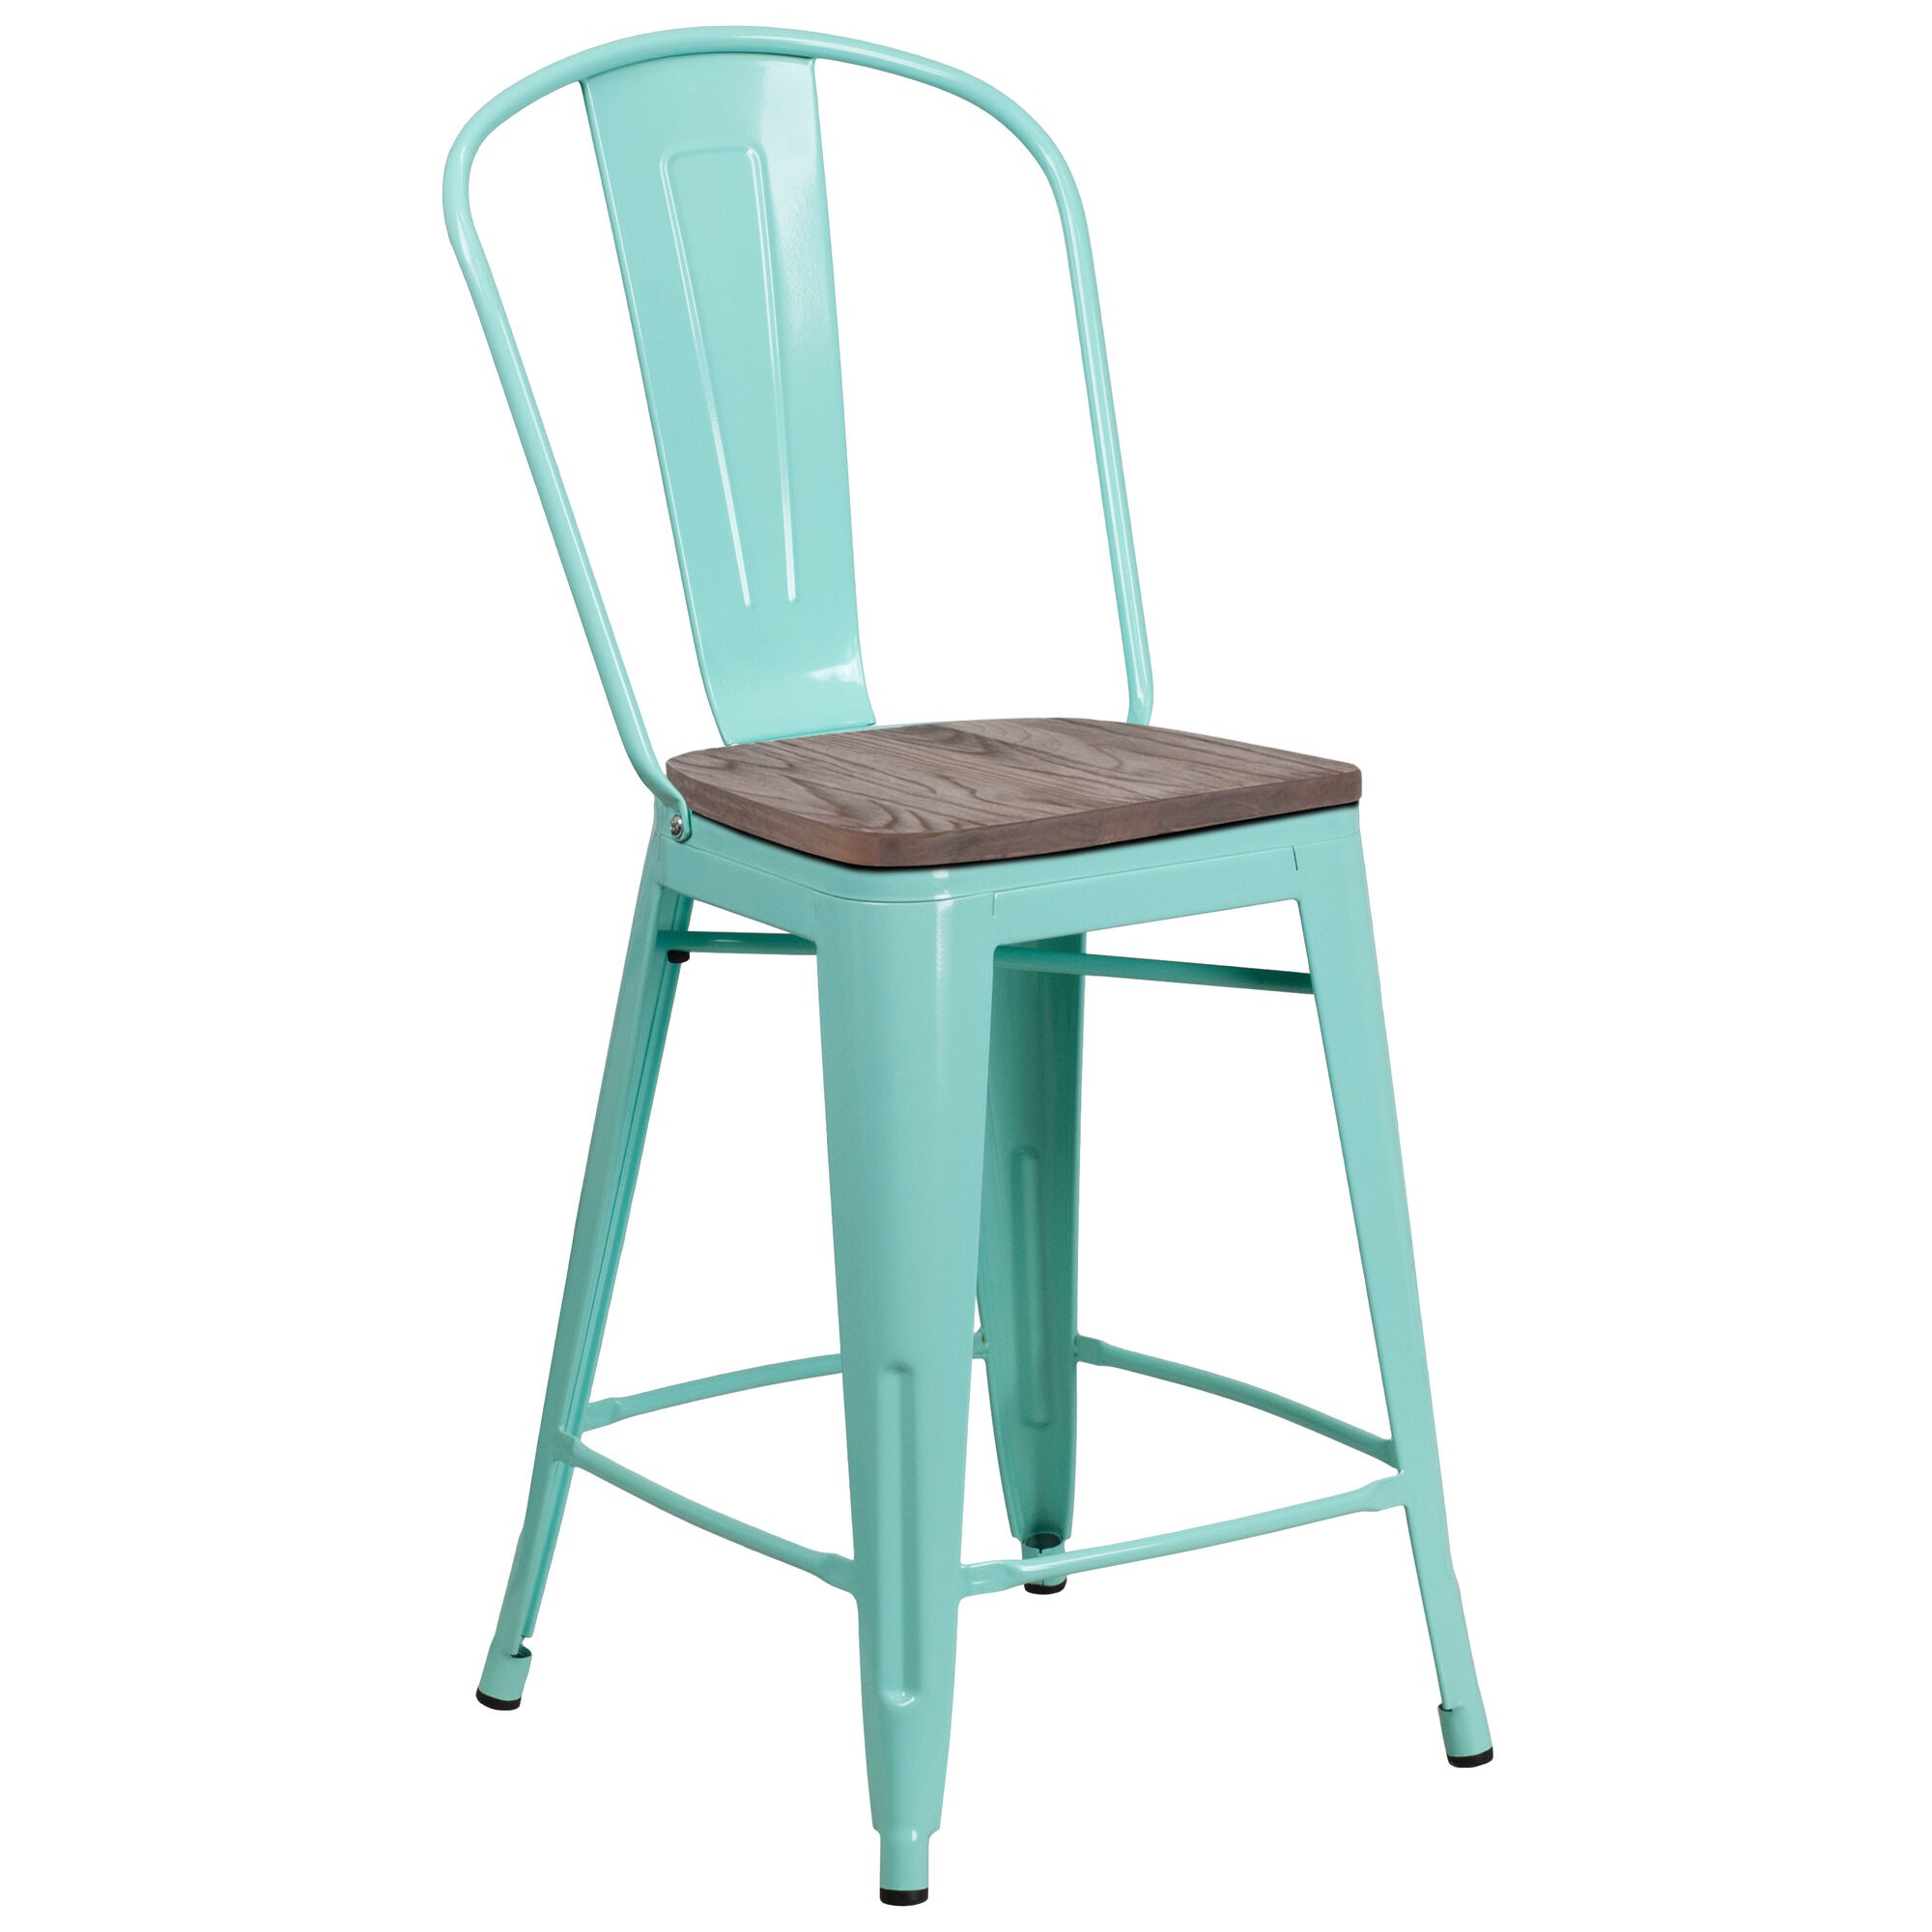 Superb 24 High Mint Green Metal Counter Height Stool With Back And Wood Seat Pdpeps Interior Chair Design Pdpepsorg